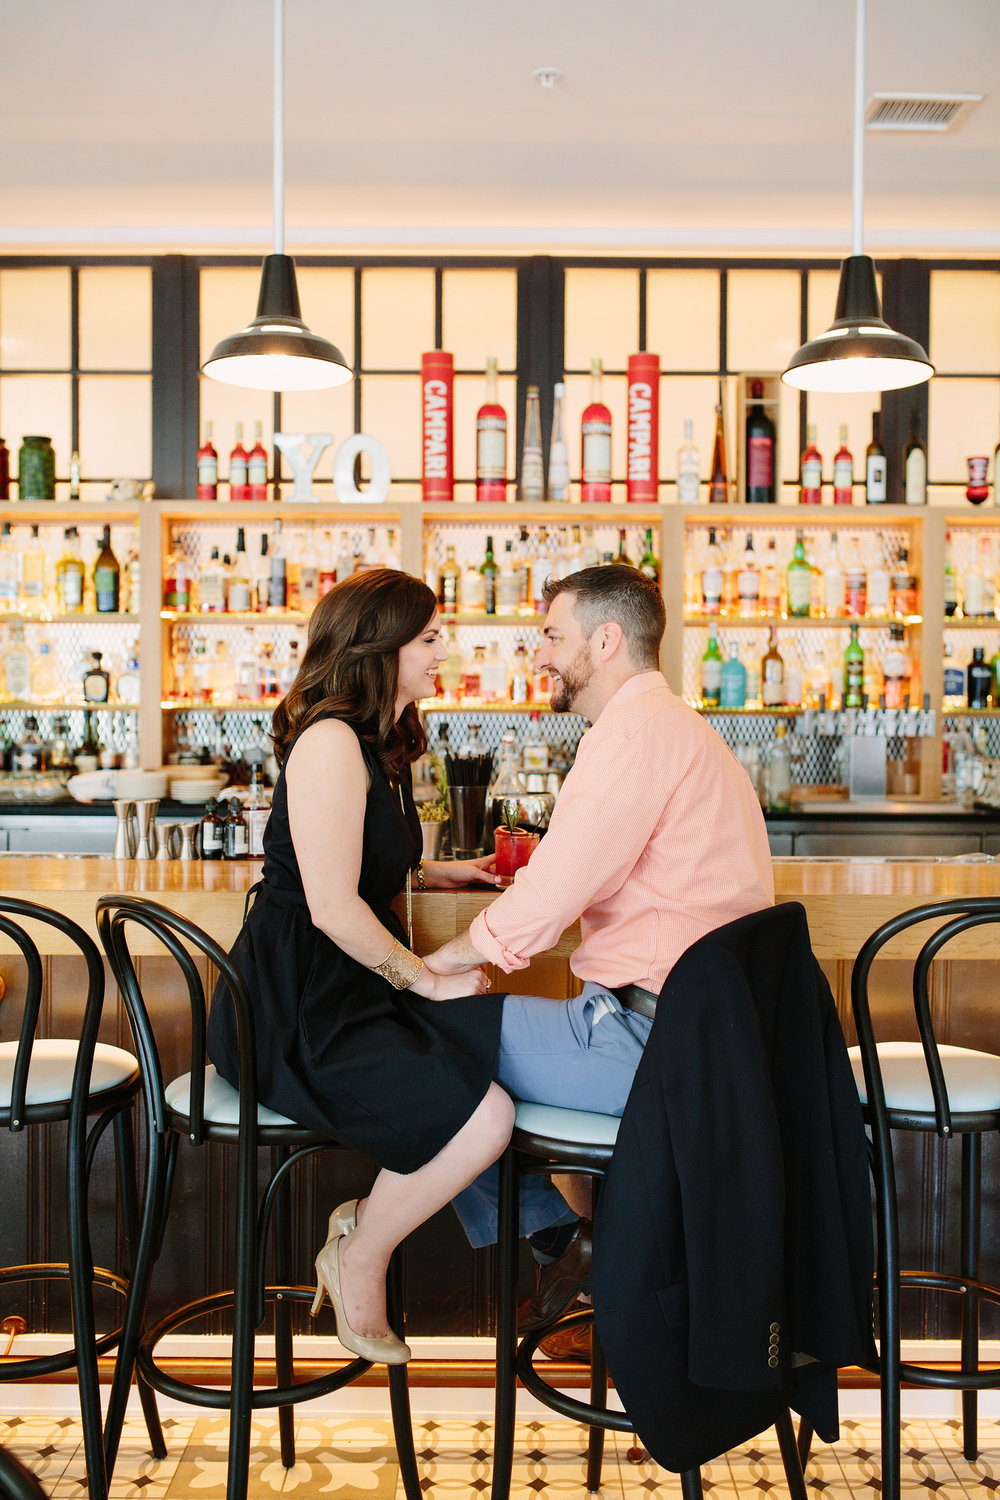 Date Night at Pacci Italian Kitchen, Photography by Red Fly Studio